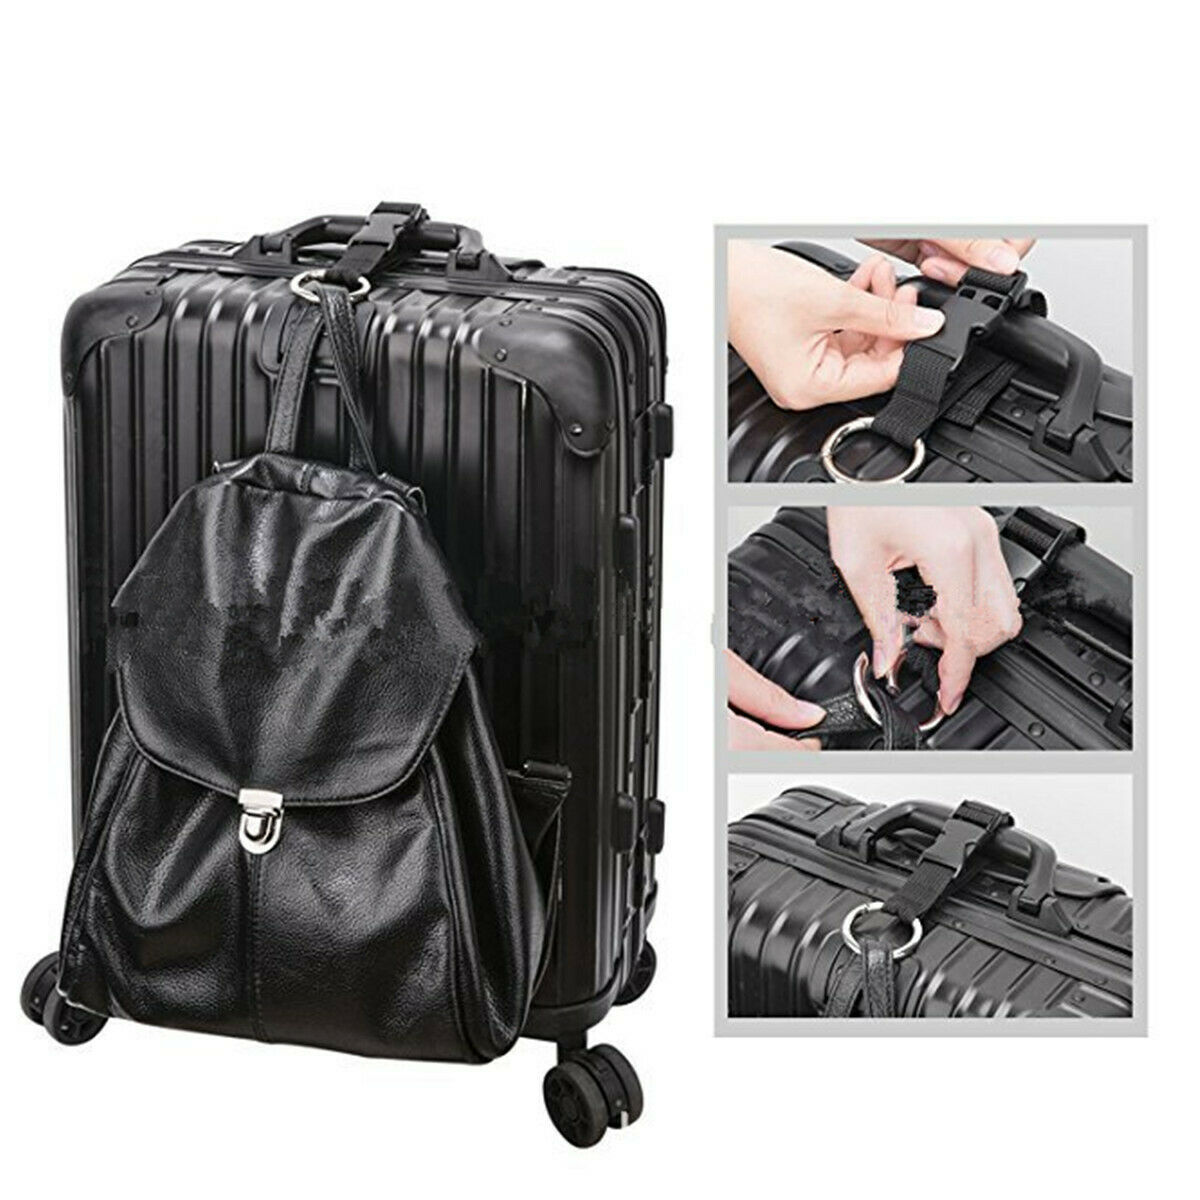 Handbag Clip Jacket Holder Gripper Add Bag Anti Theft Luggage Strap Use To Carry For Sale Online Ebay